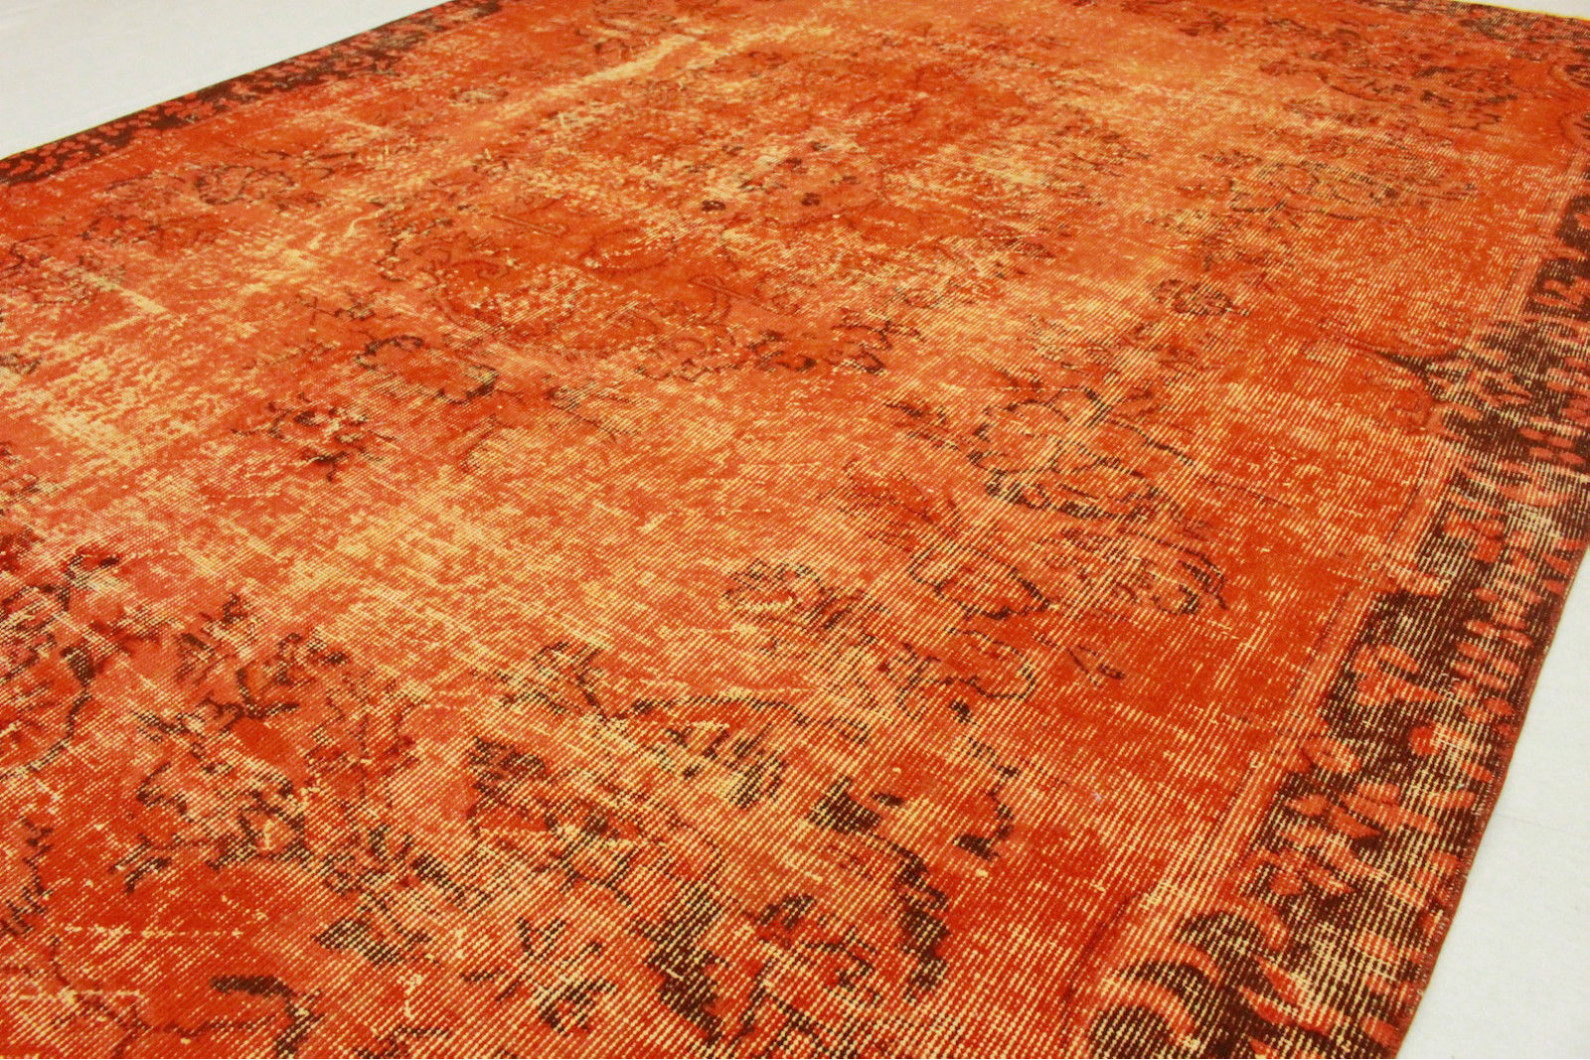 Teppich Orange Vintage Teppich Orange In 290x200cm 1011 5132 Bei